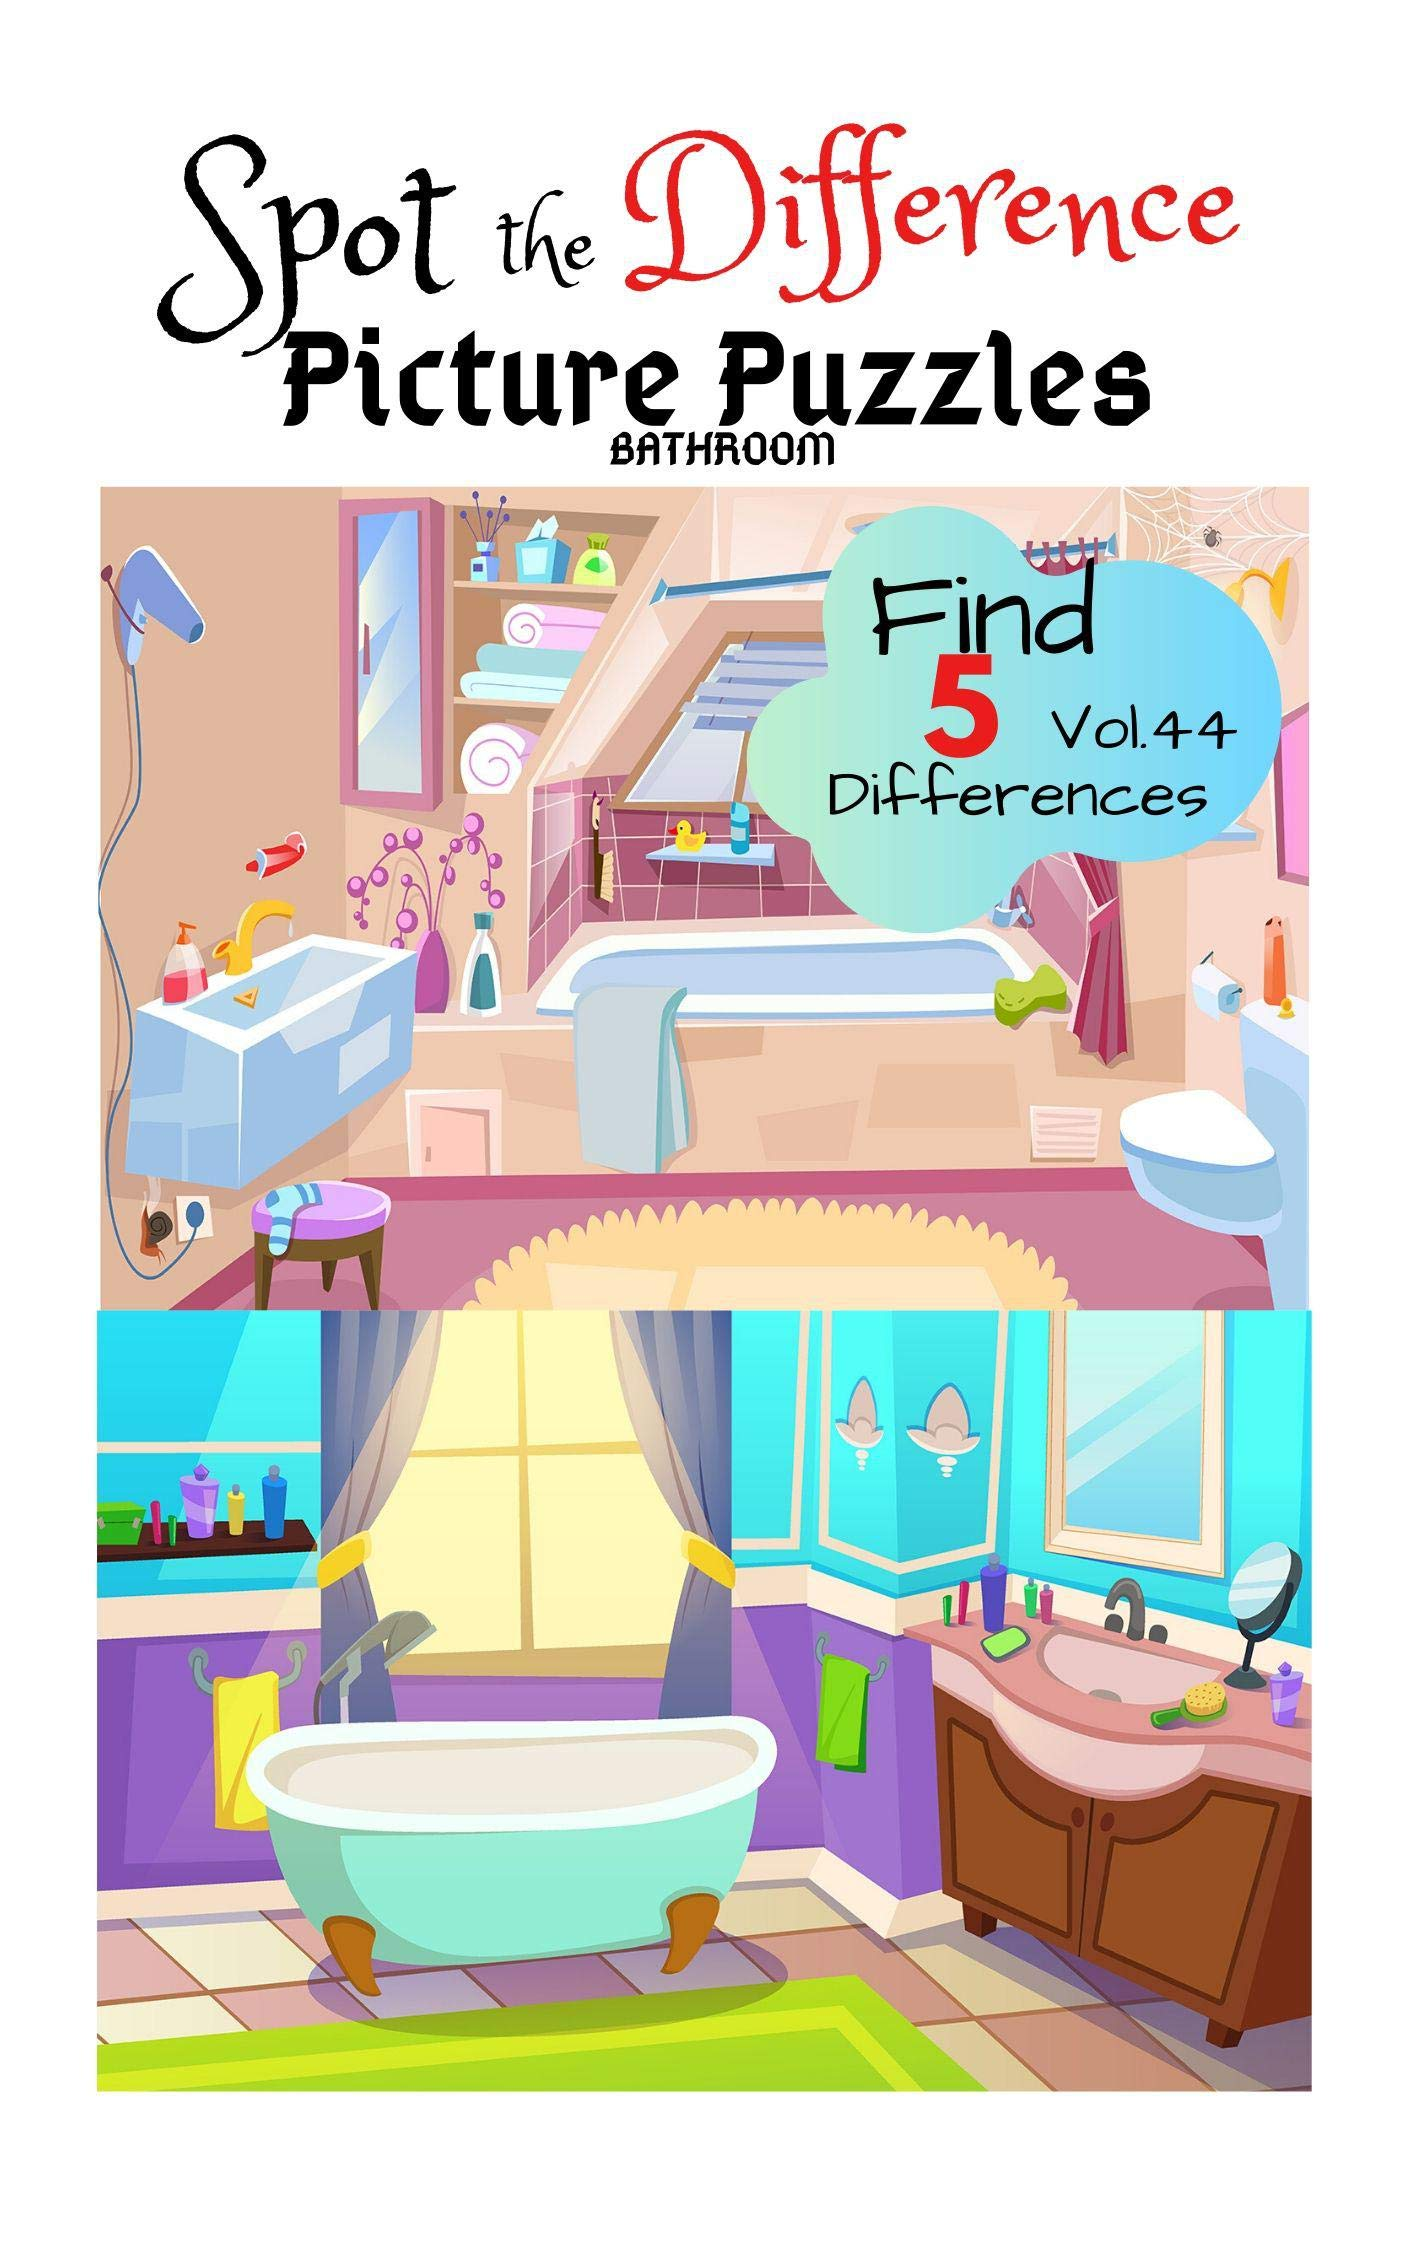 """Spot the Difference Picture Puzzles """"BATHROOM"""" Find 5 Differences vol.44: Children Activities Book for Kids Age 3-8, Boys and Girls Activity Learning"""